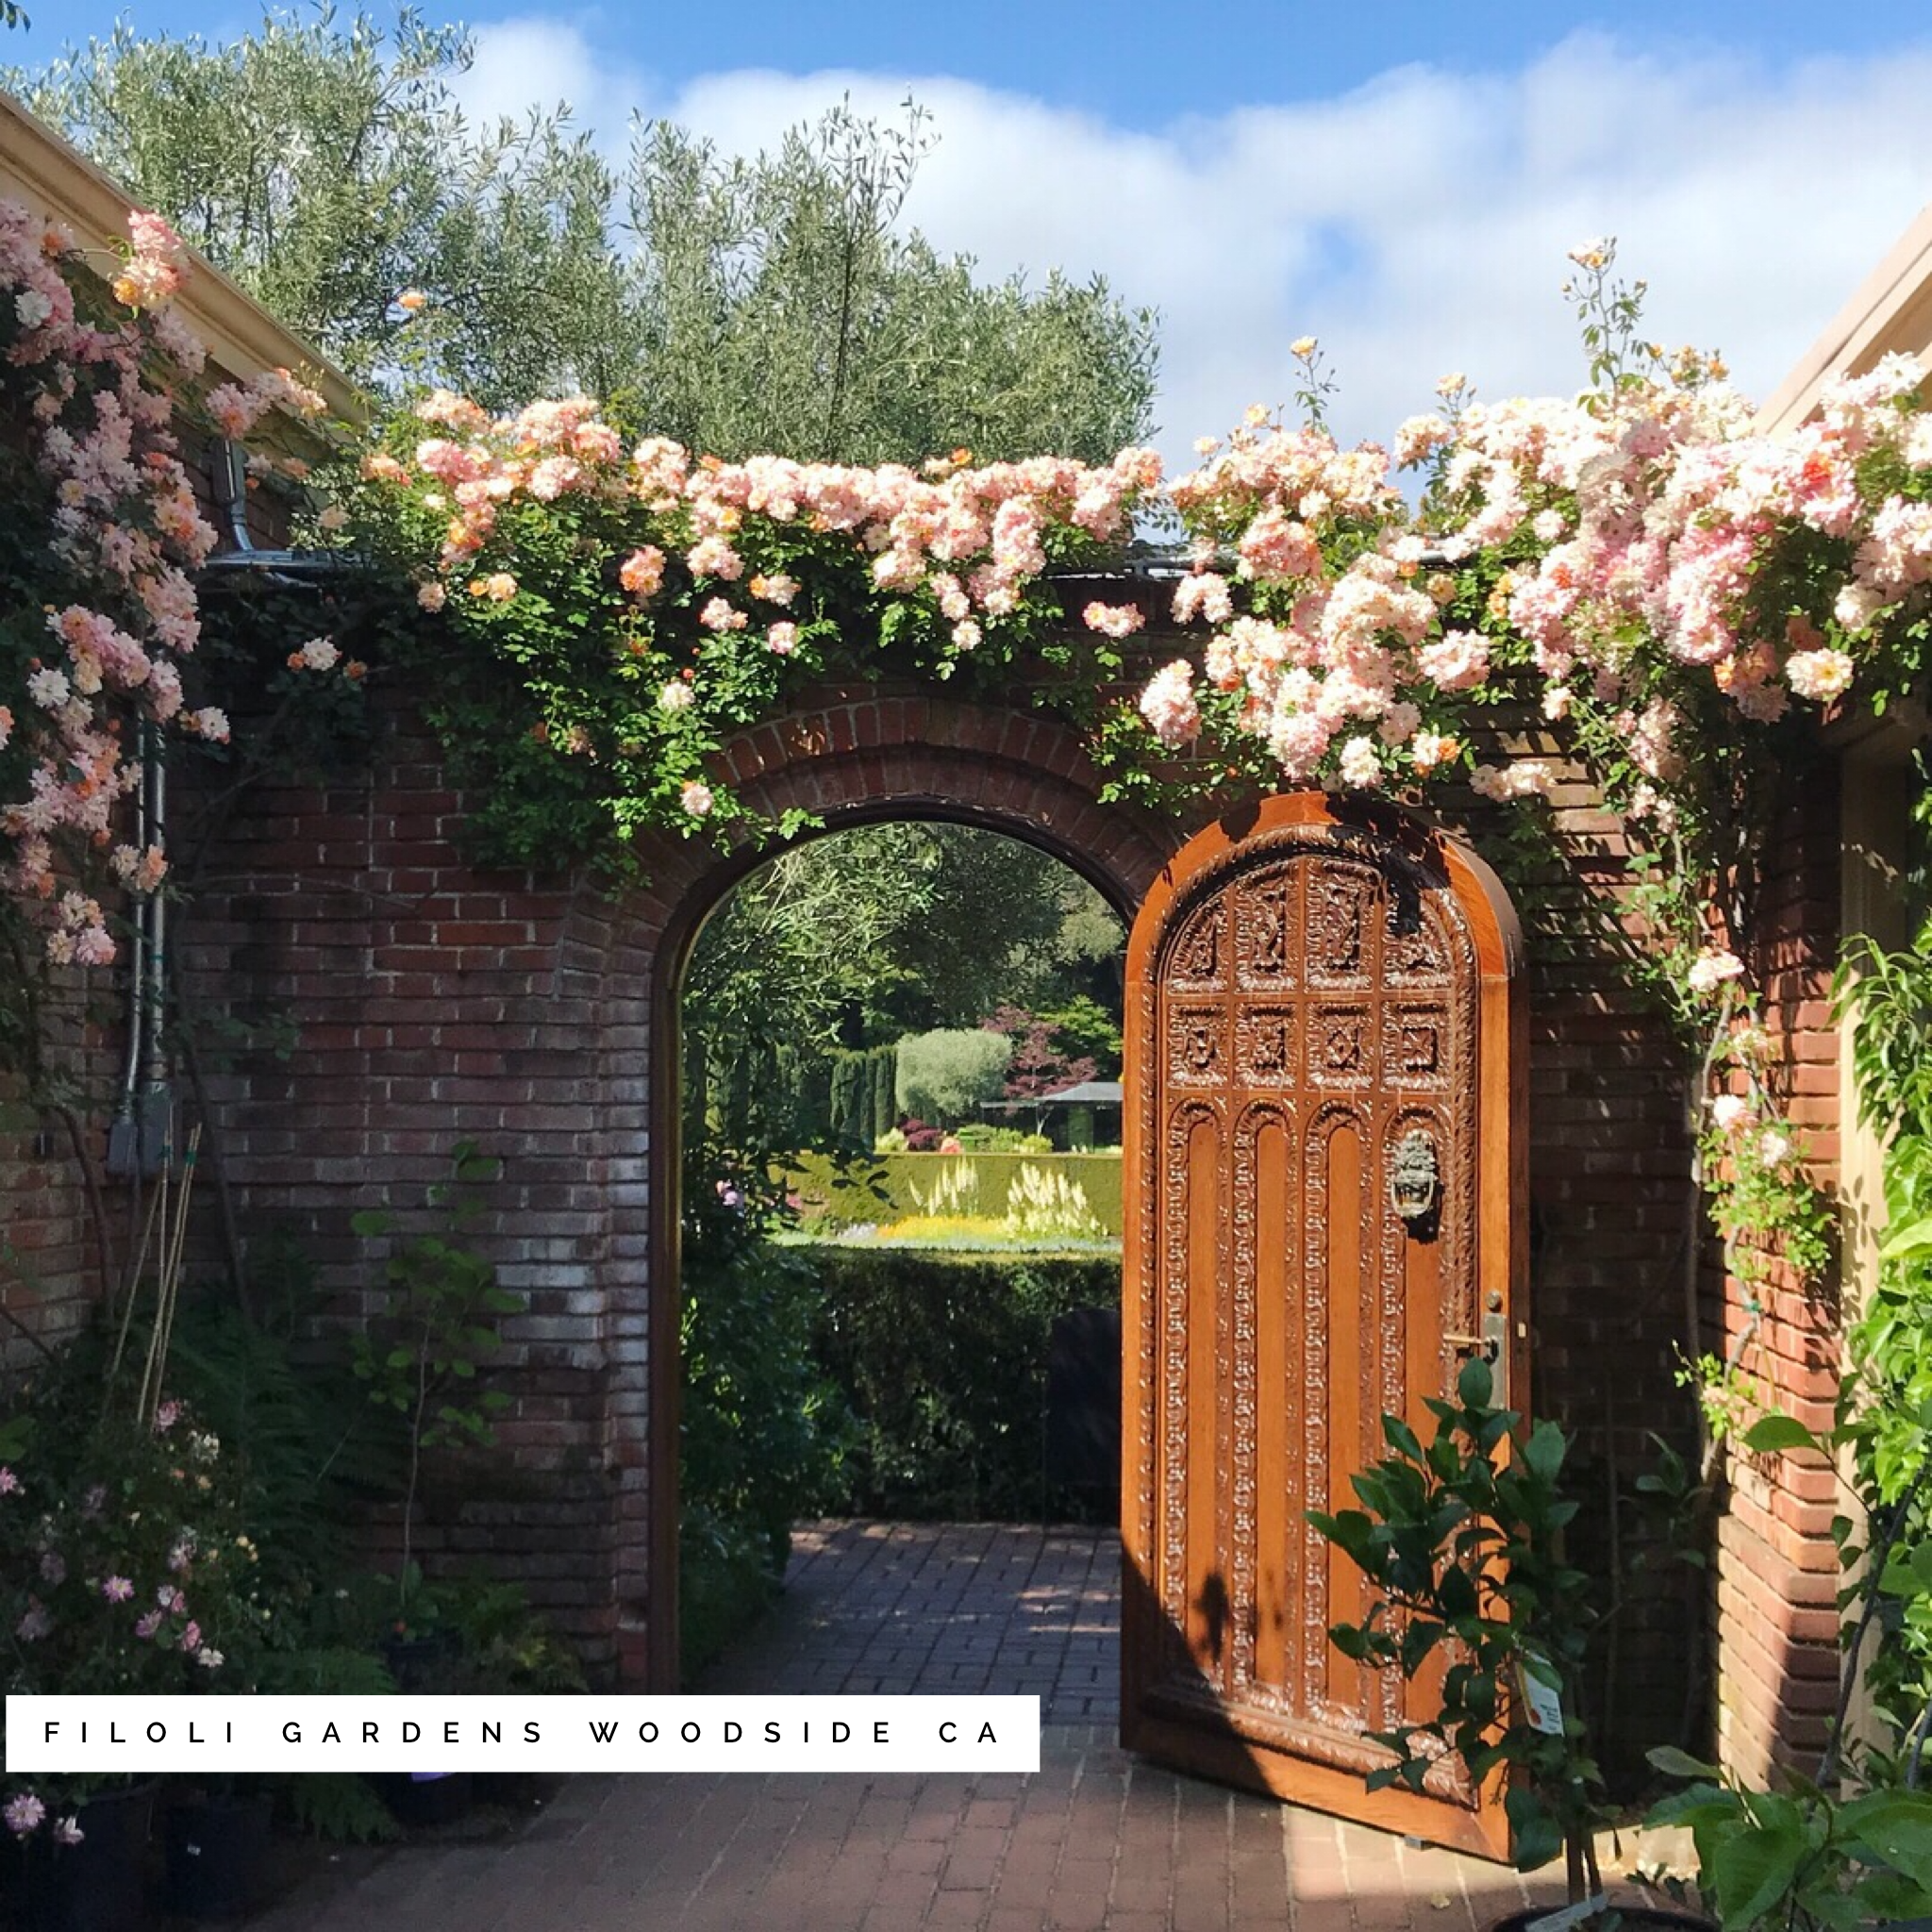 The gates to the gardens were even more breathtaking this time of year!   Filoli Gardens, Woodside, CA - May 2018